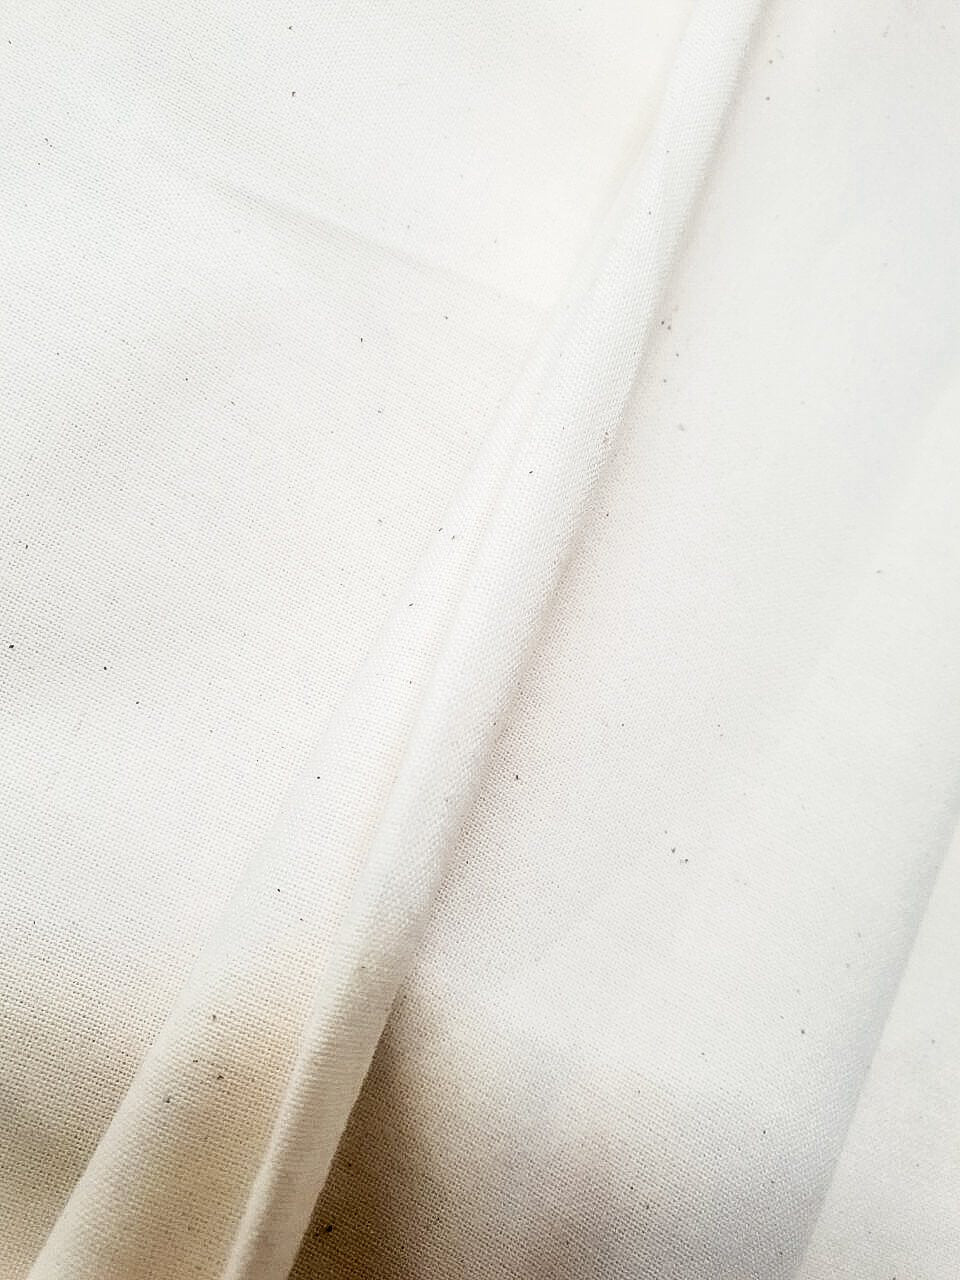 100% recycled cotton medium weight calico fabric 156gsm UK sustainable material ADKN hobbycraft sewing fabric for dressmaking